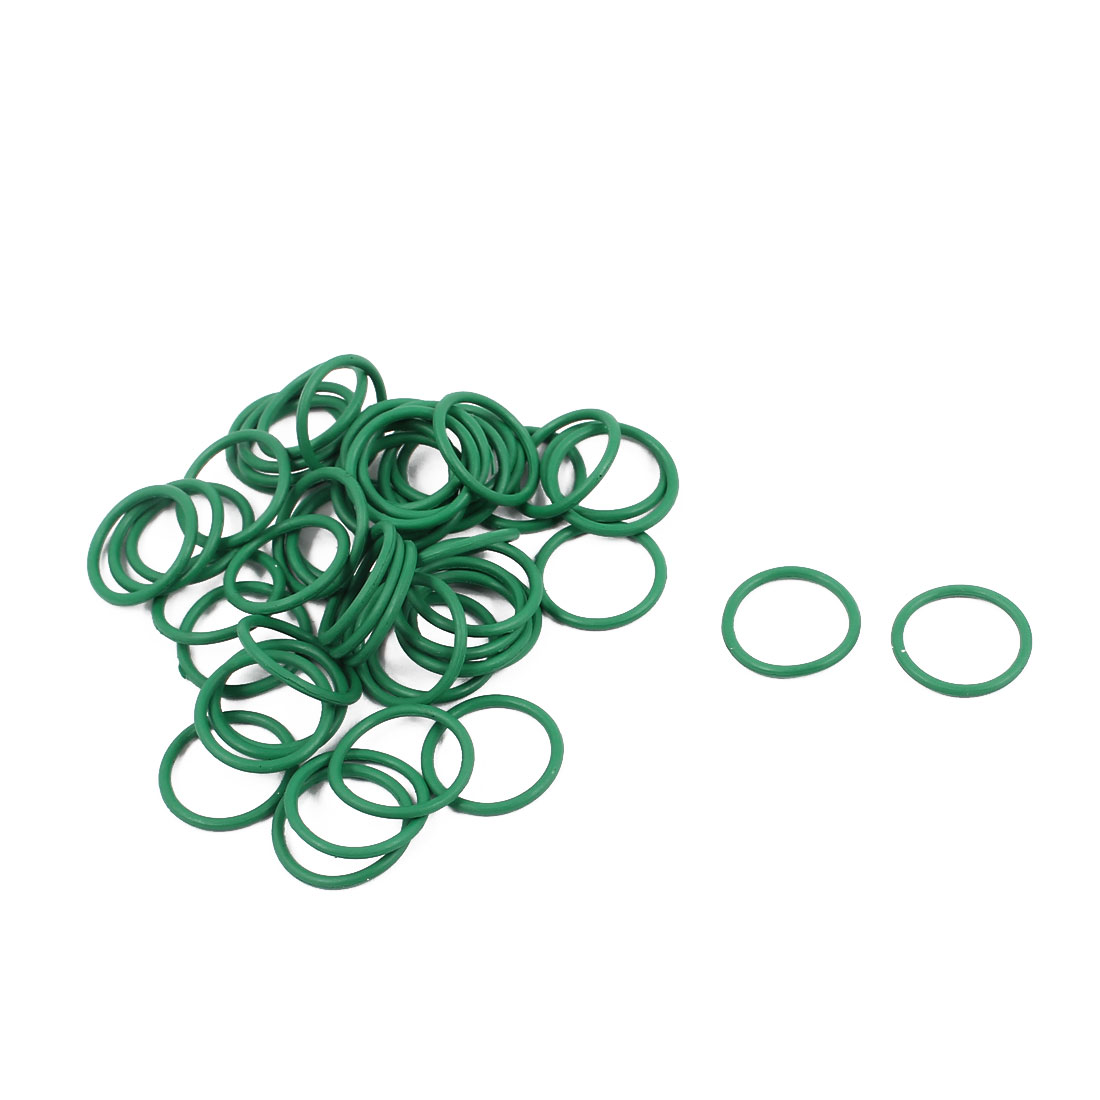 50Pcs 11mm x 1mm FKM Nitrile Rubber O-rings Heat Resistant Sealing Ring Grommets Green